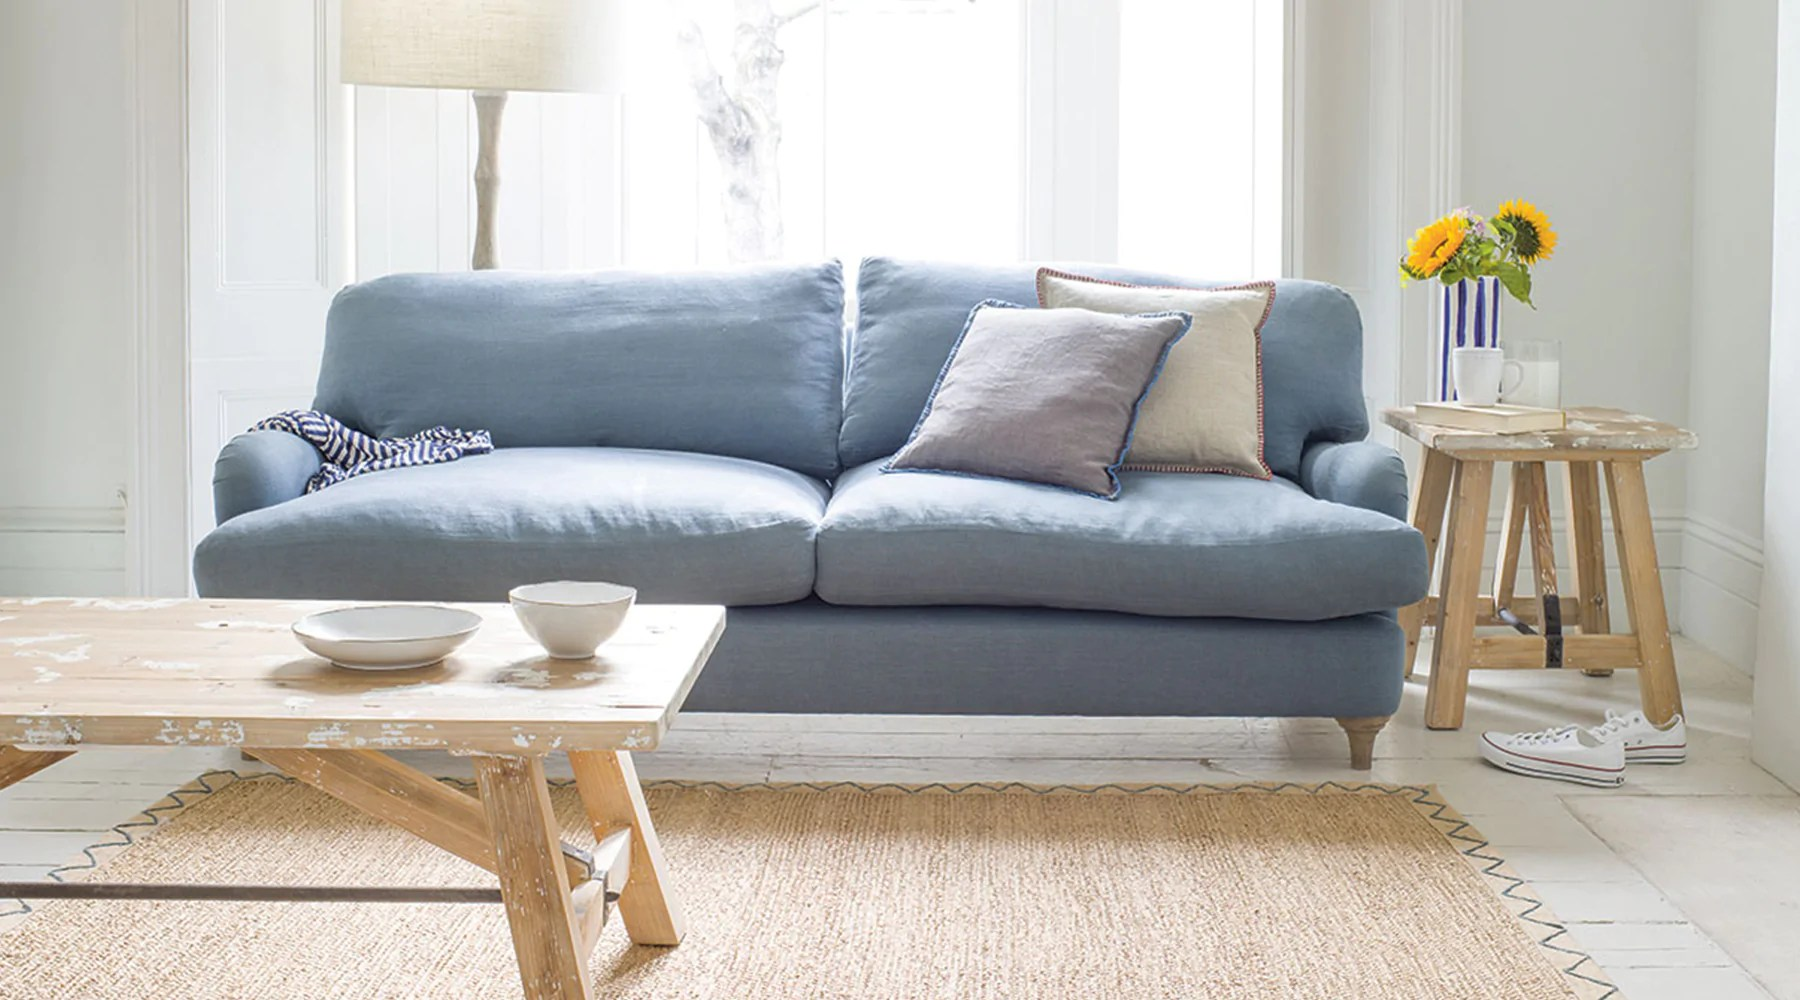 slipcover to perfect fit your couch